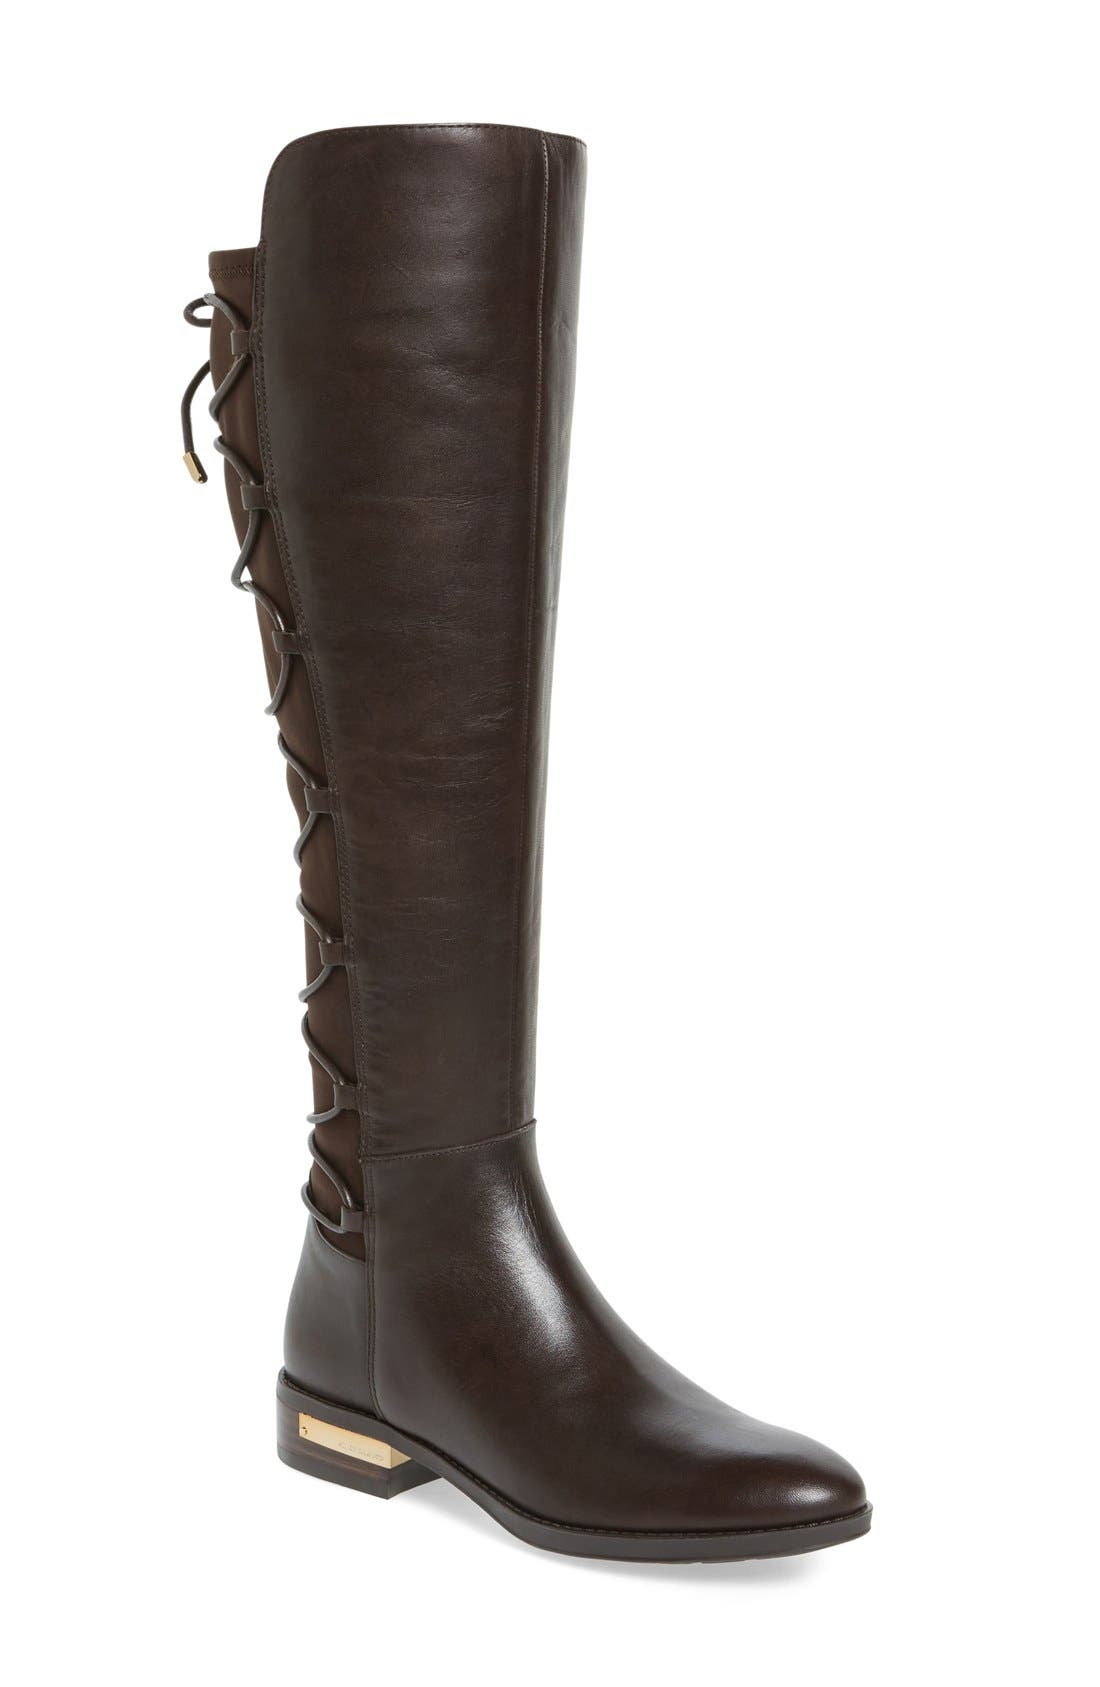 Main Image - Vince Camuto Parle Over the Knee Corset Boot (Women)